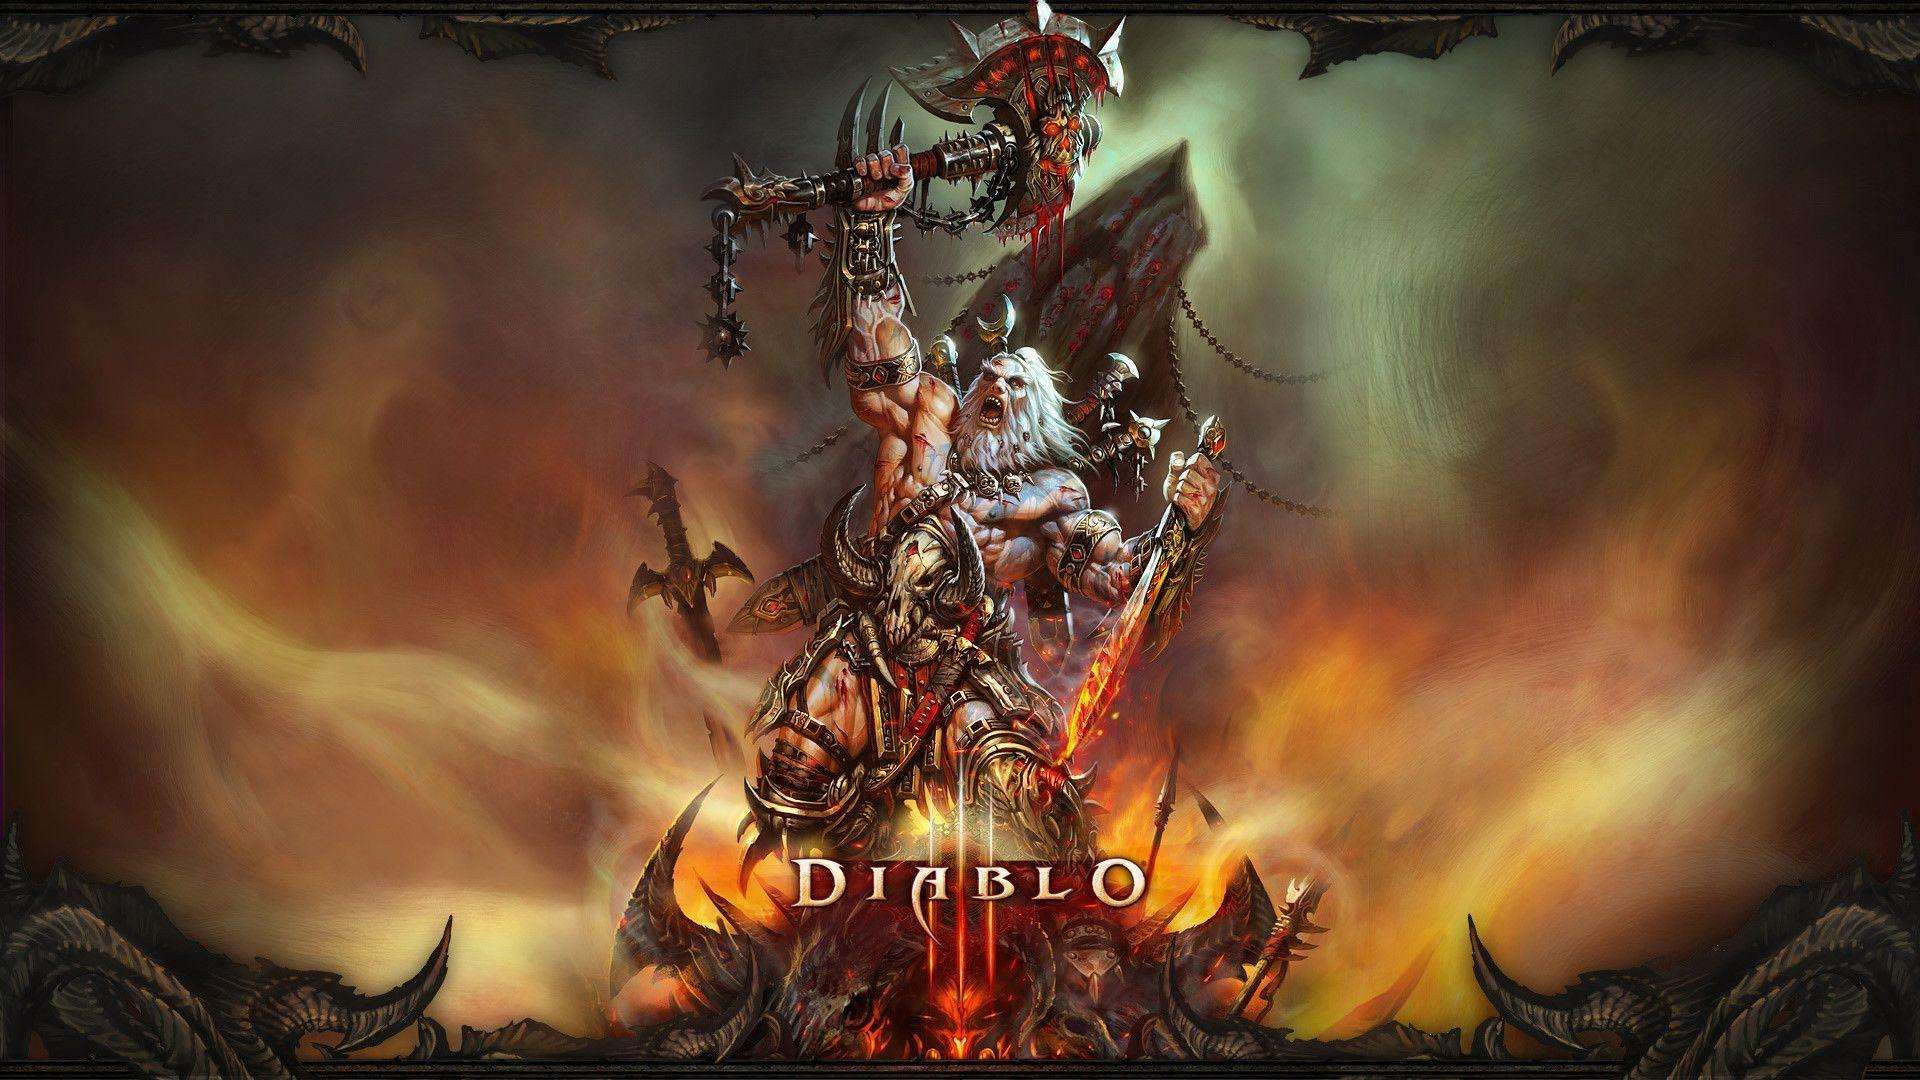 Diablo 3 Crusader Wallpaper 1920x1080 Diablo 3 Wallpapers 19...